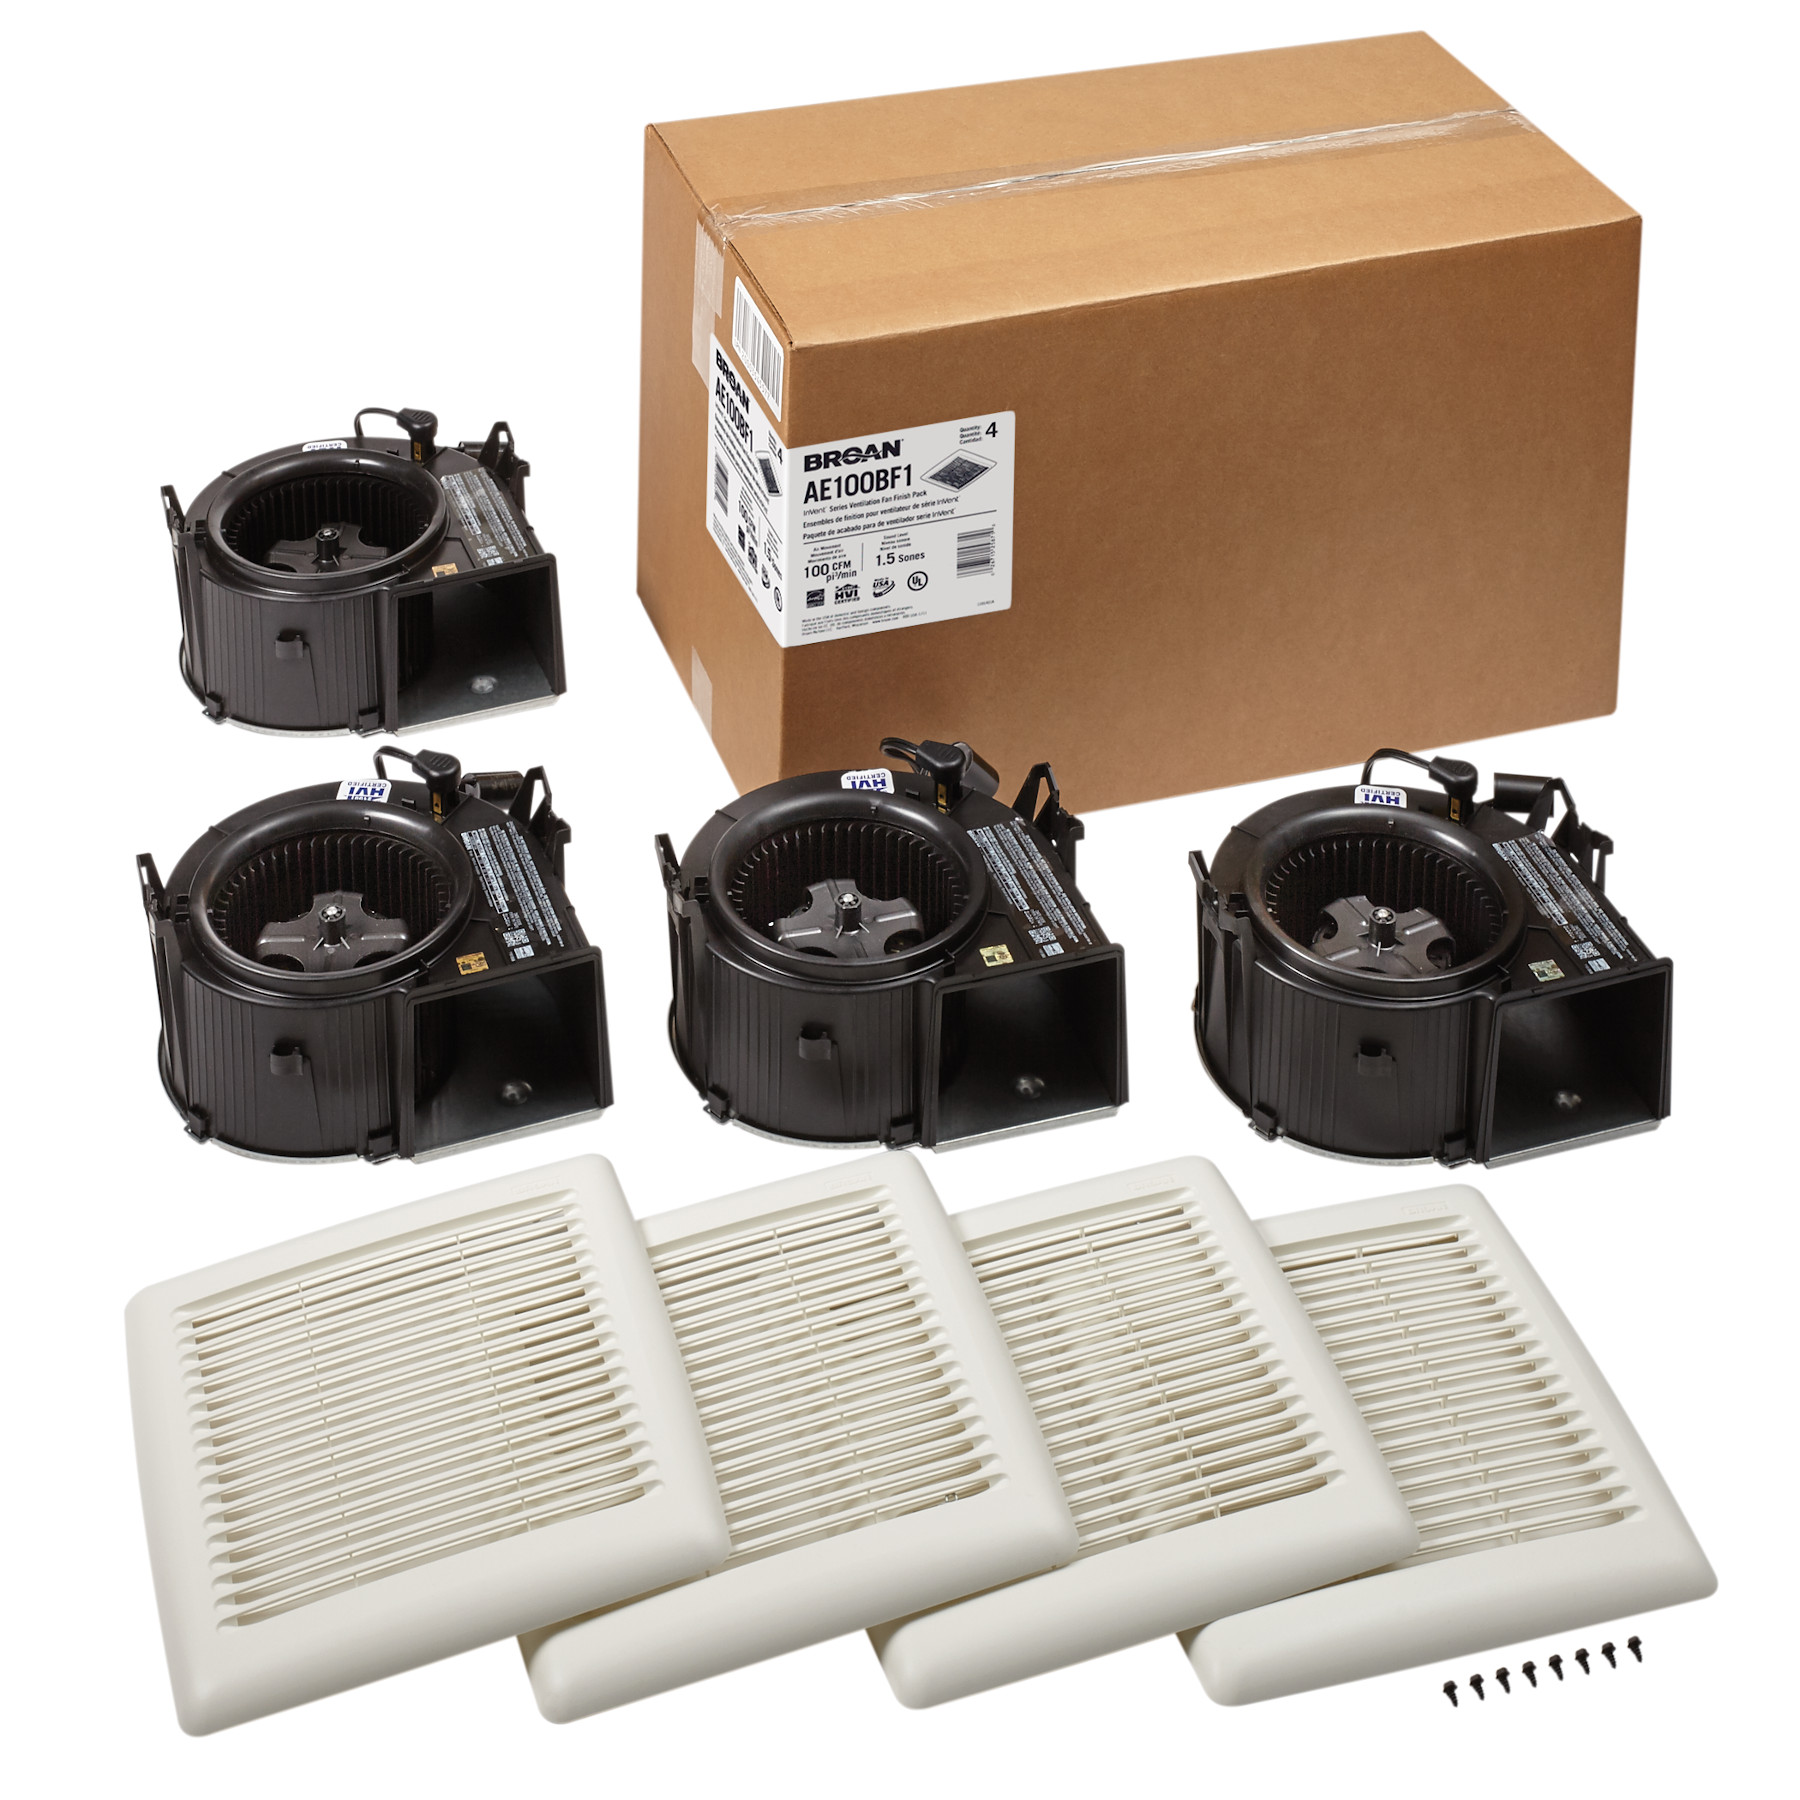 Broan Flex™ Series 100 CFM 1.5 Sones Bathroom Exhaust Fan Finish Pack Energy Star®